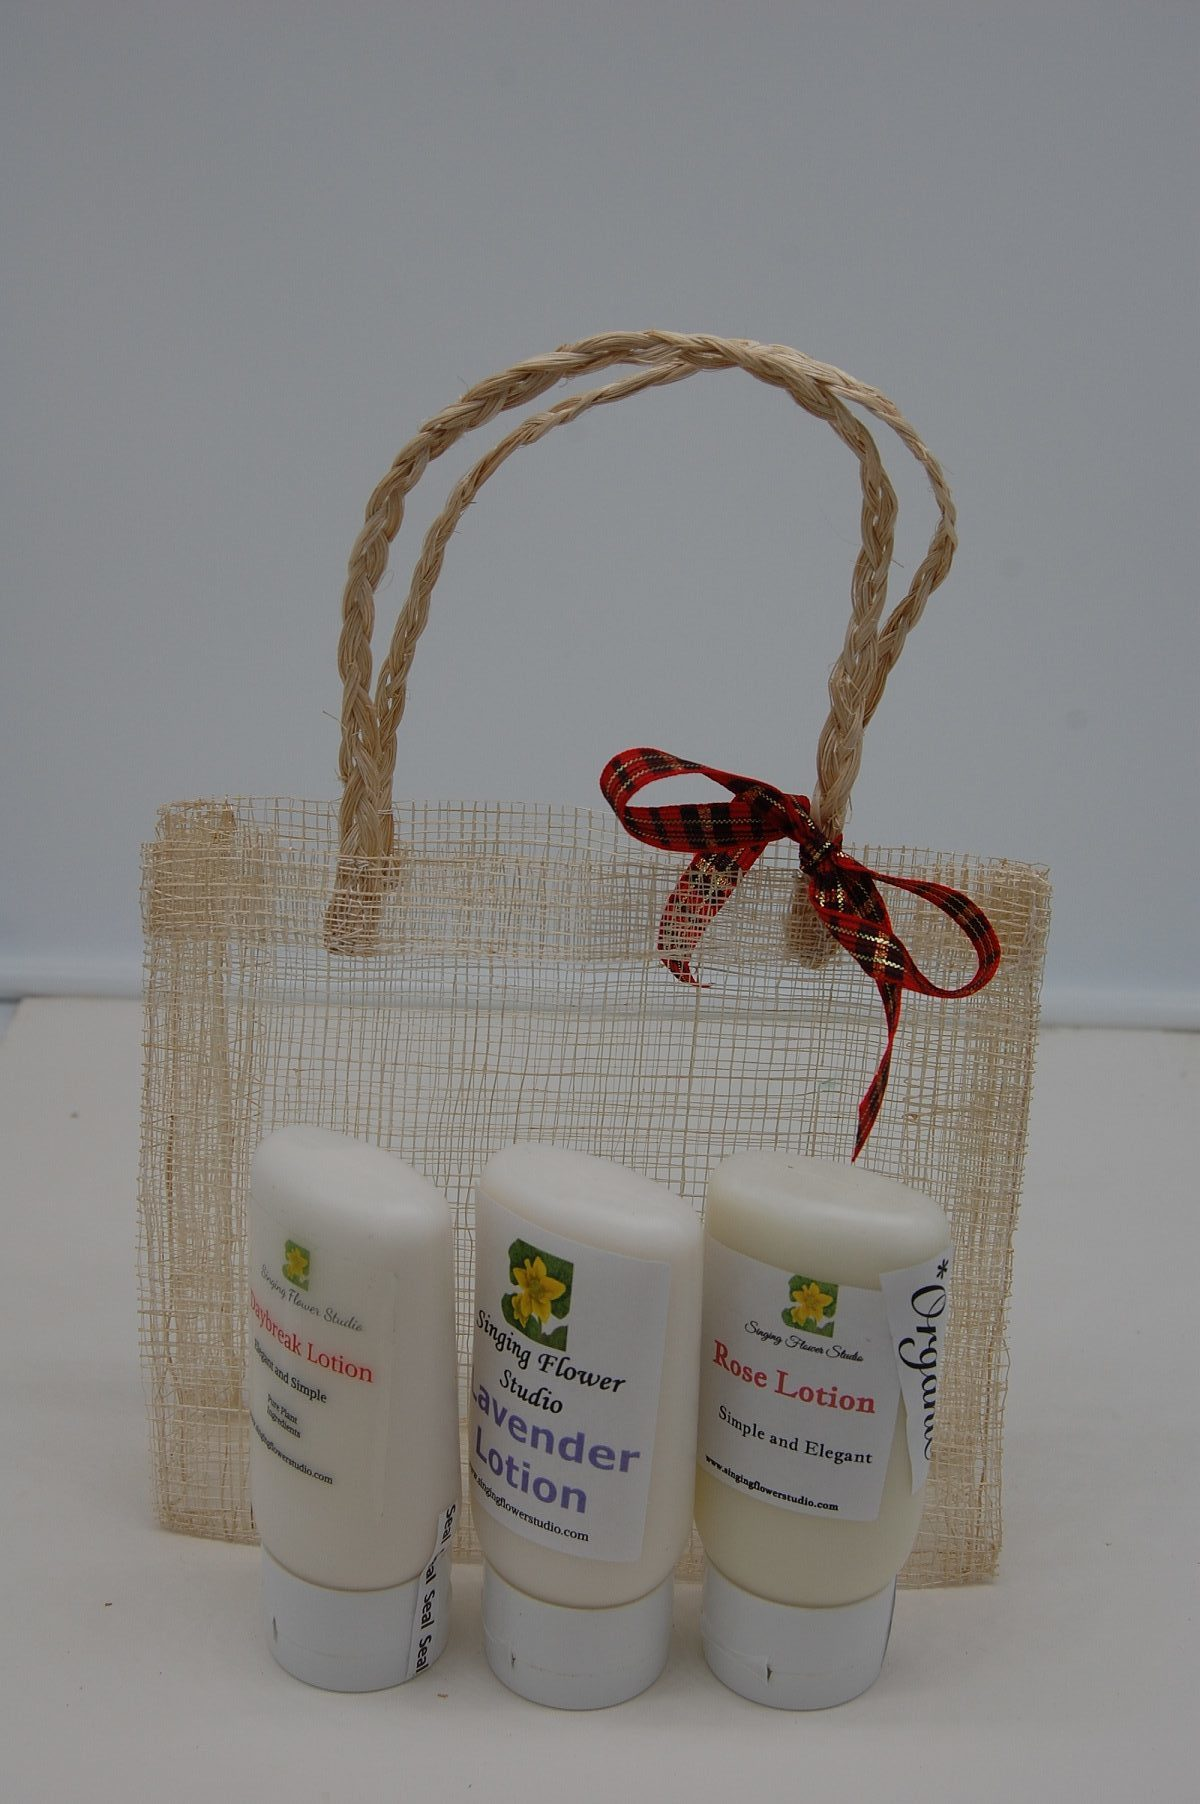 Lotion gift Basket in front